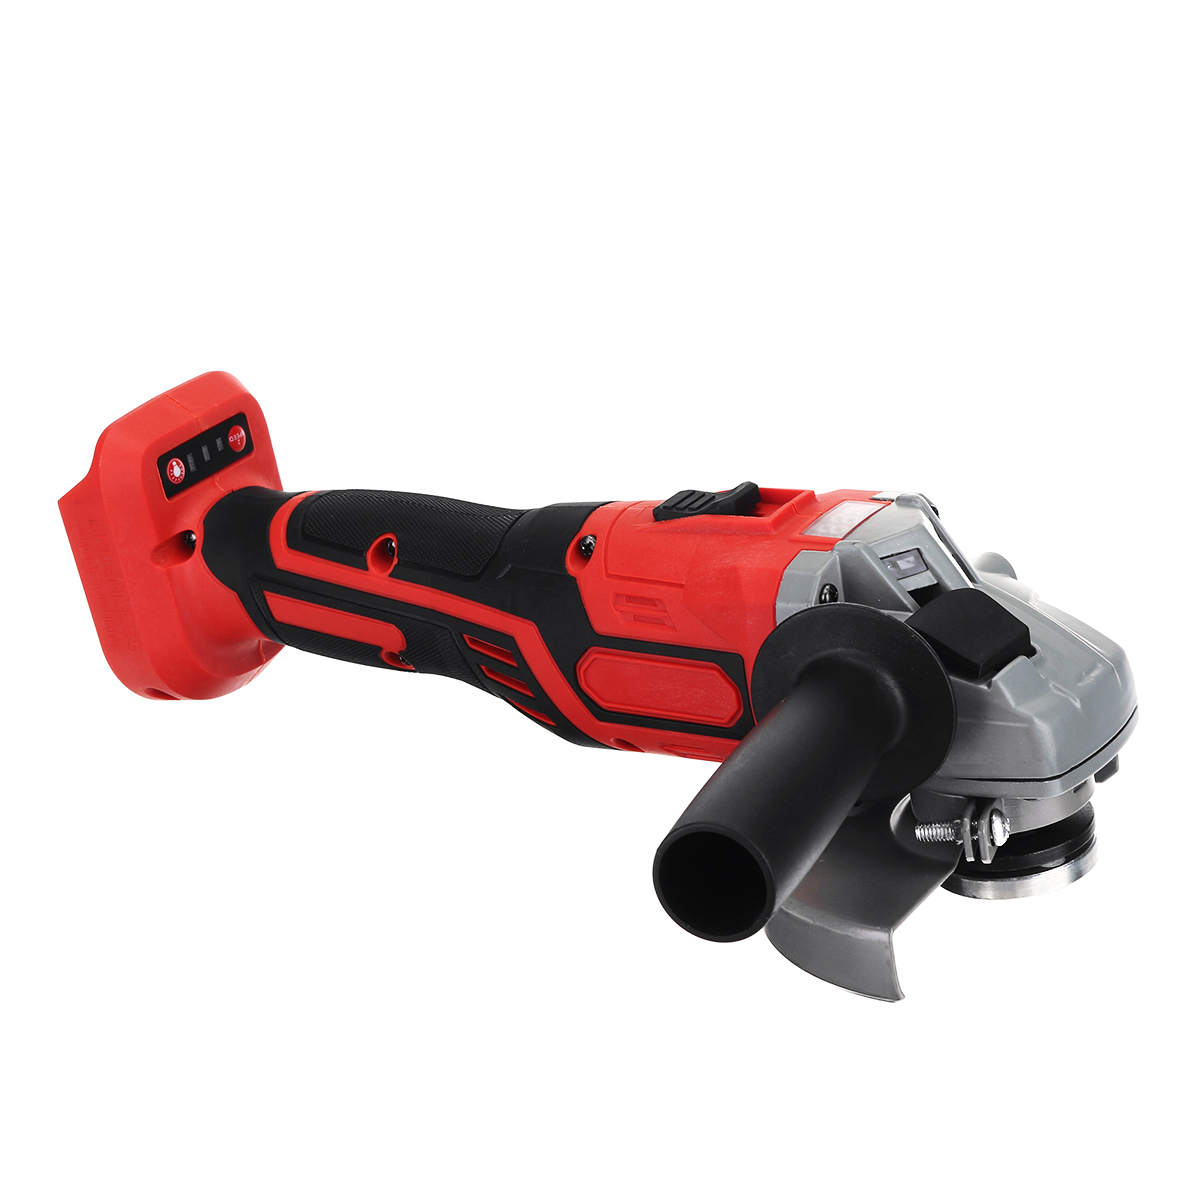 800W 125mm Brushless Cordless Angle Grinder Grinding Machine For 18V Makita Battery